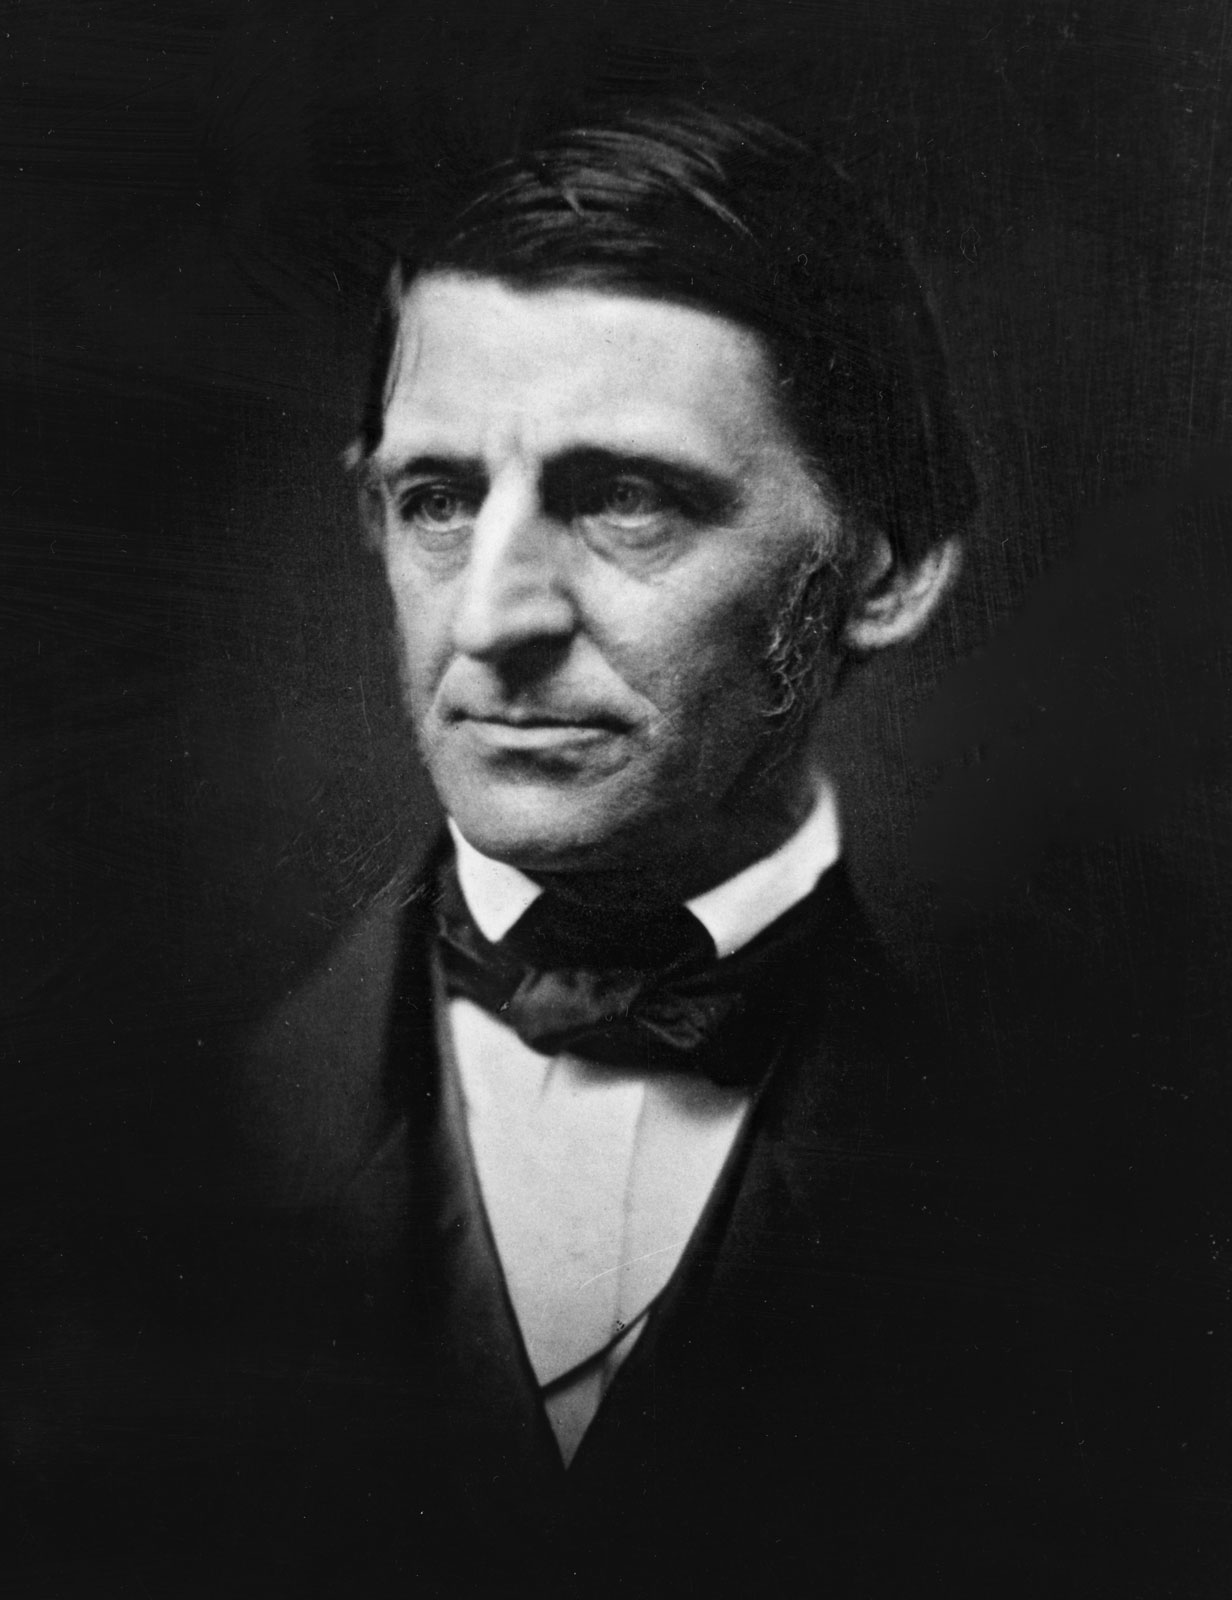 ralph waldo emerson writings Works cited in the shmoop guide to ralph waldo emerson a bibliography of works cited.